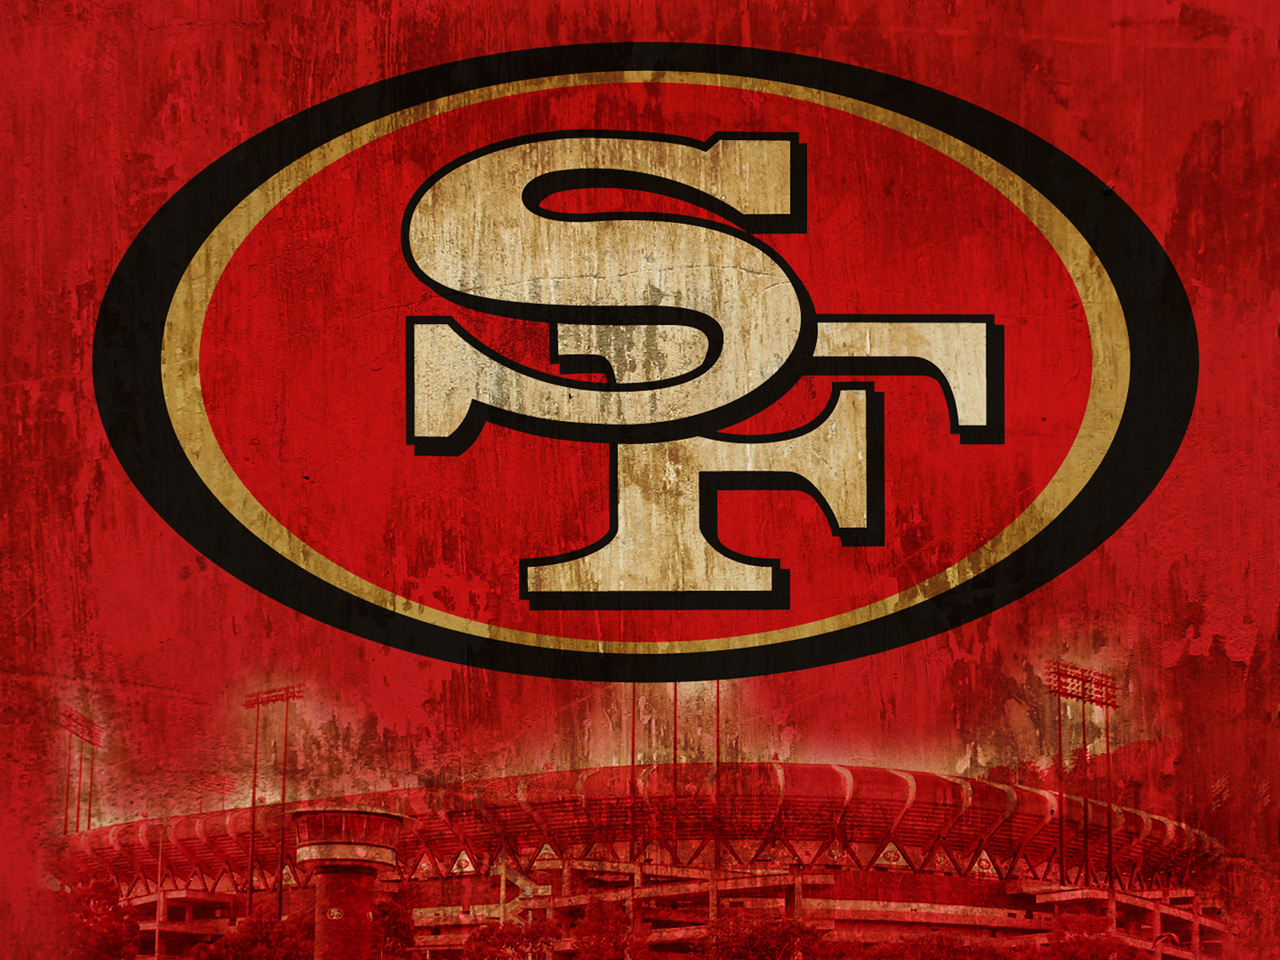 More San Francisco 49ers wallpapers San Francisco 49ers wallpapers 1280x960